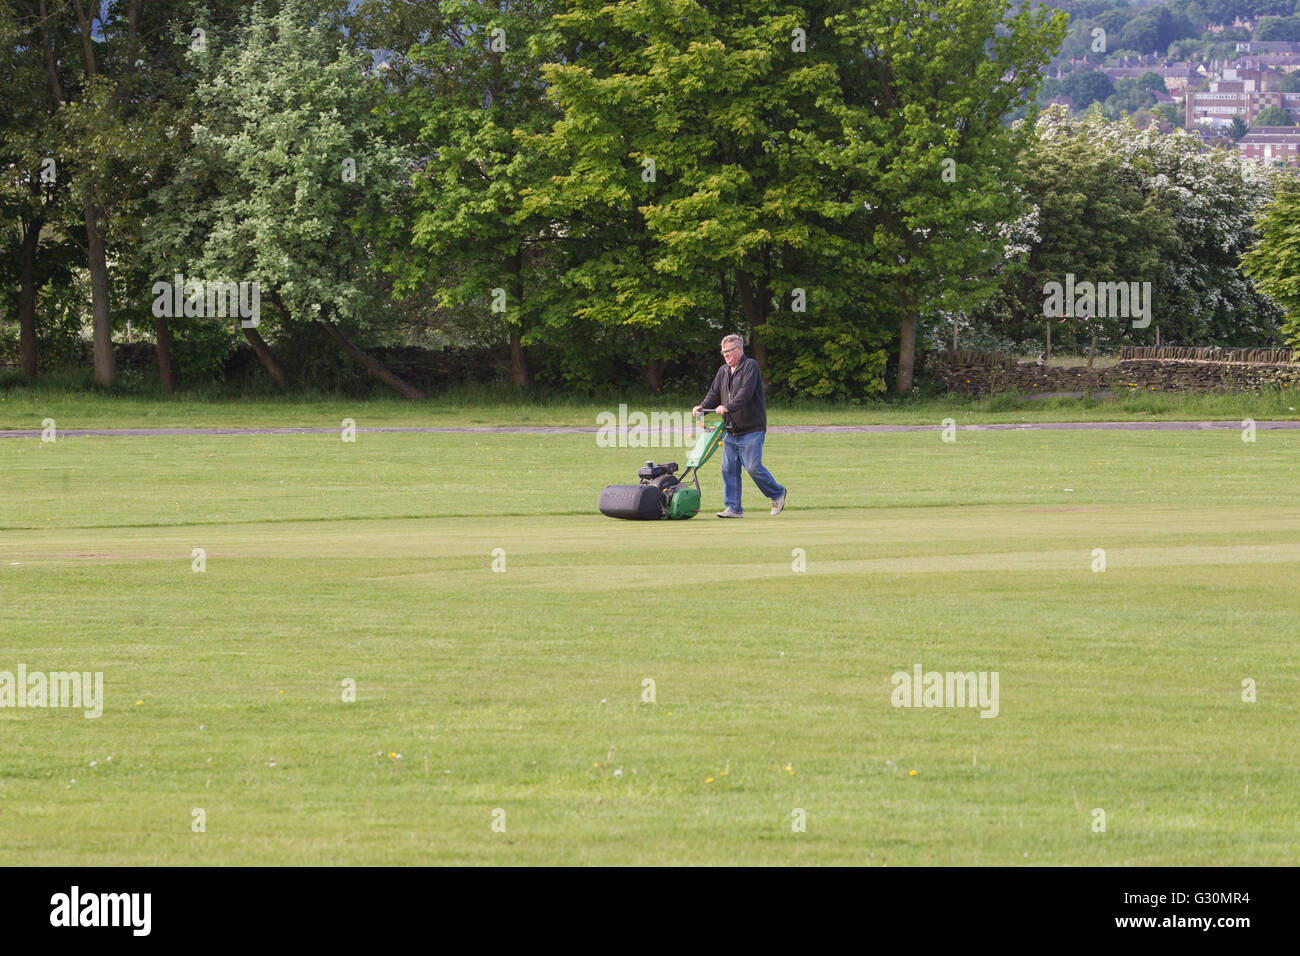 Groundsman mowing cricket square on village cricket pitch - Stock Image